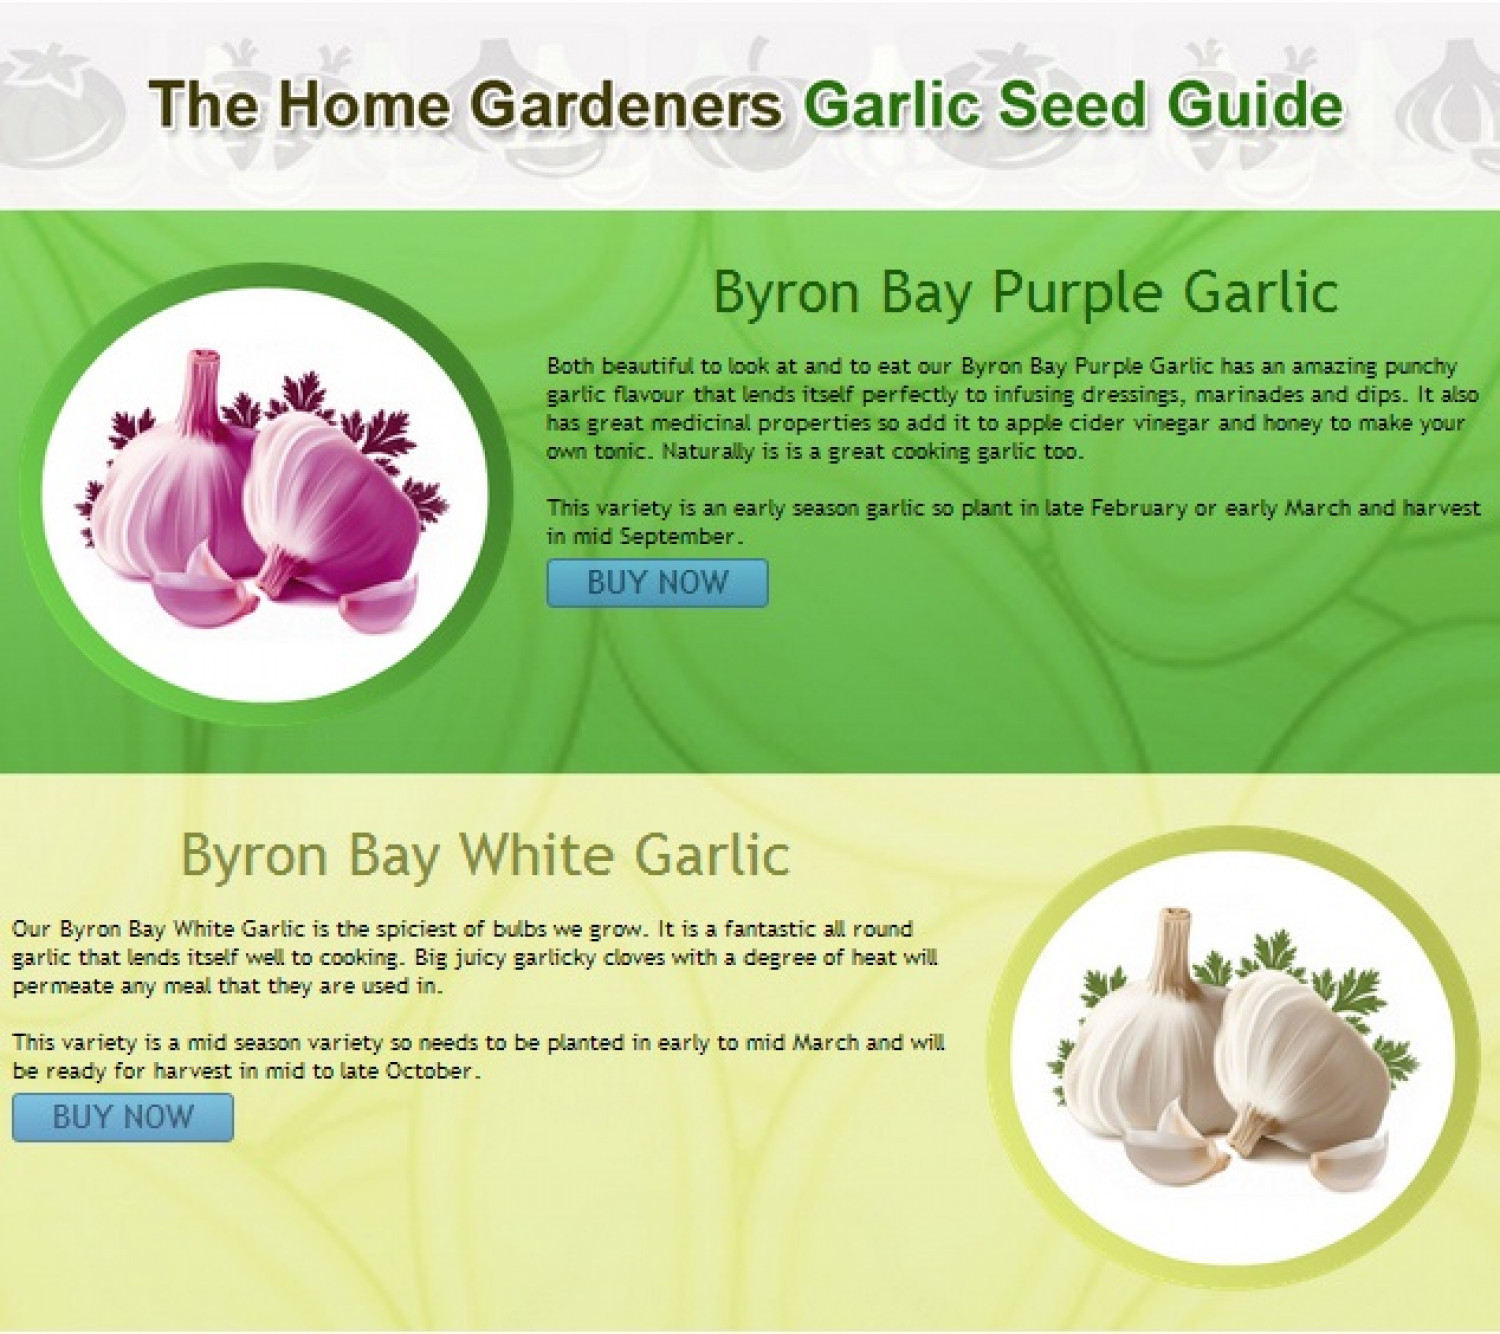 Garlic Seed Guide Infographic